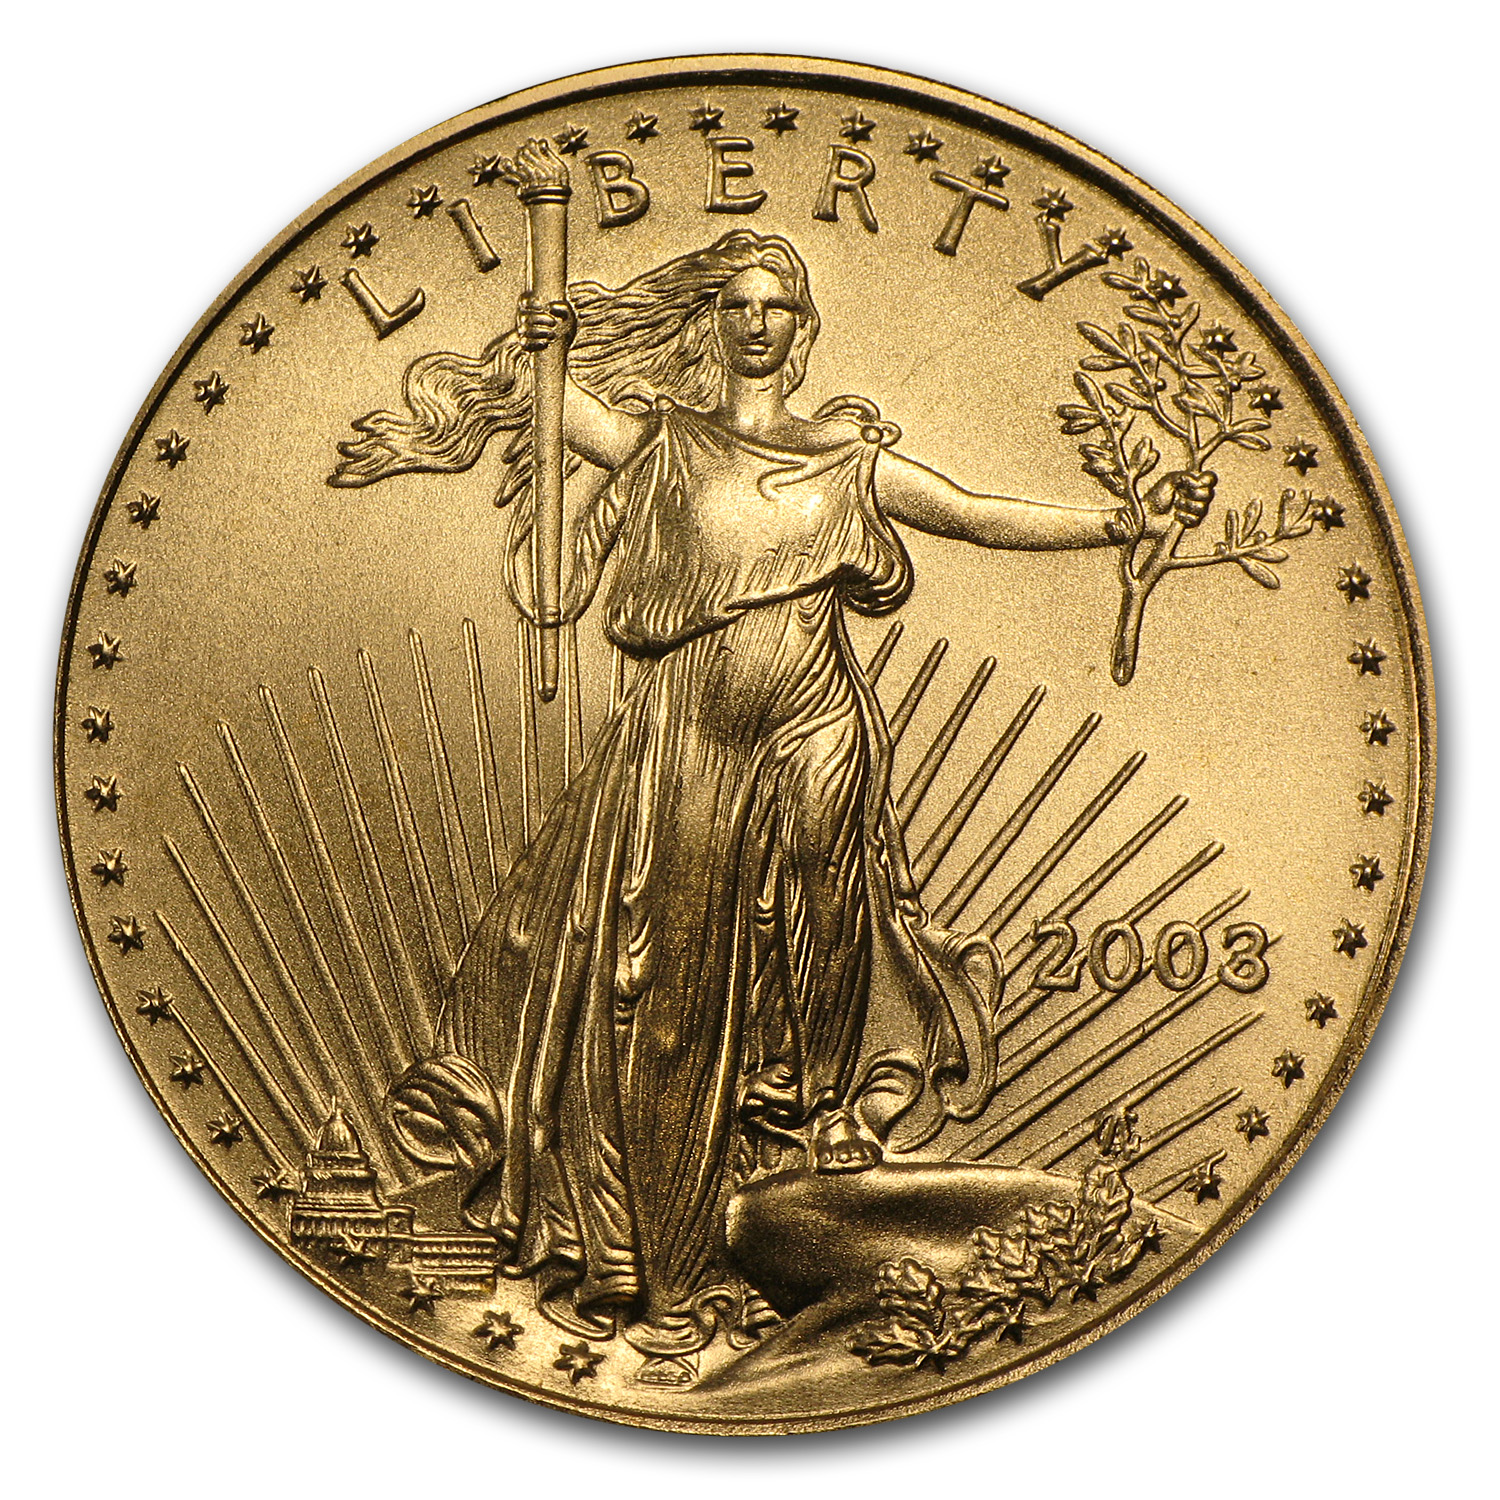 2003 1/2 oz Gold American Eagle (BU)